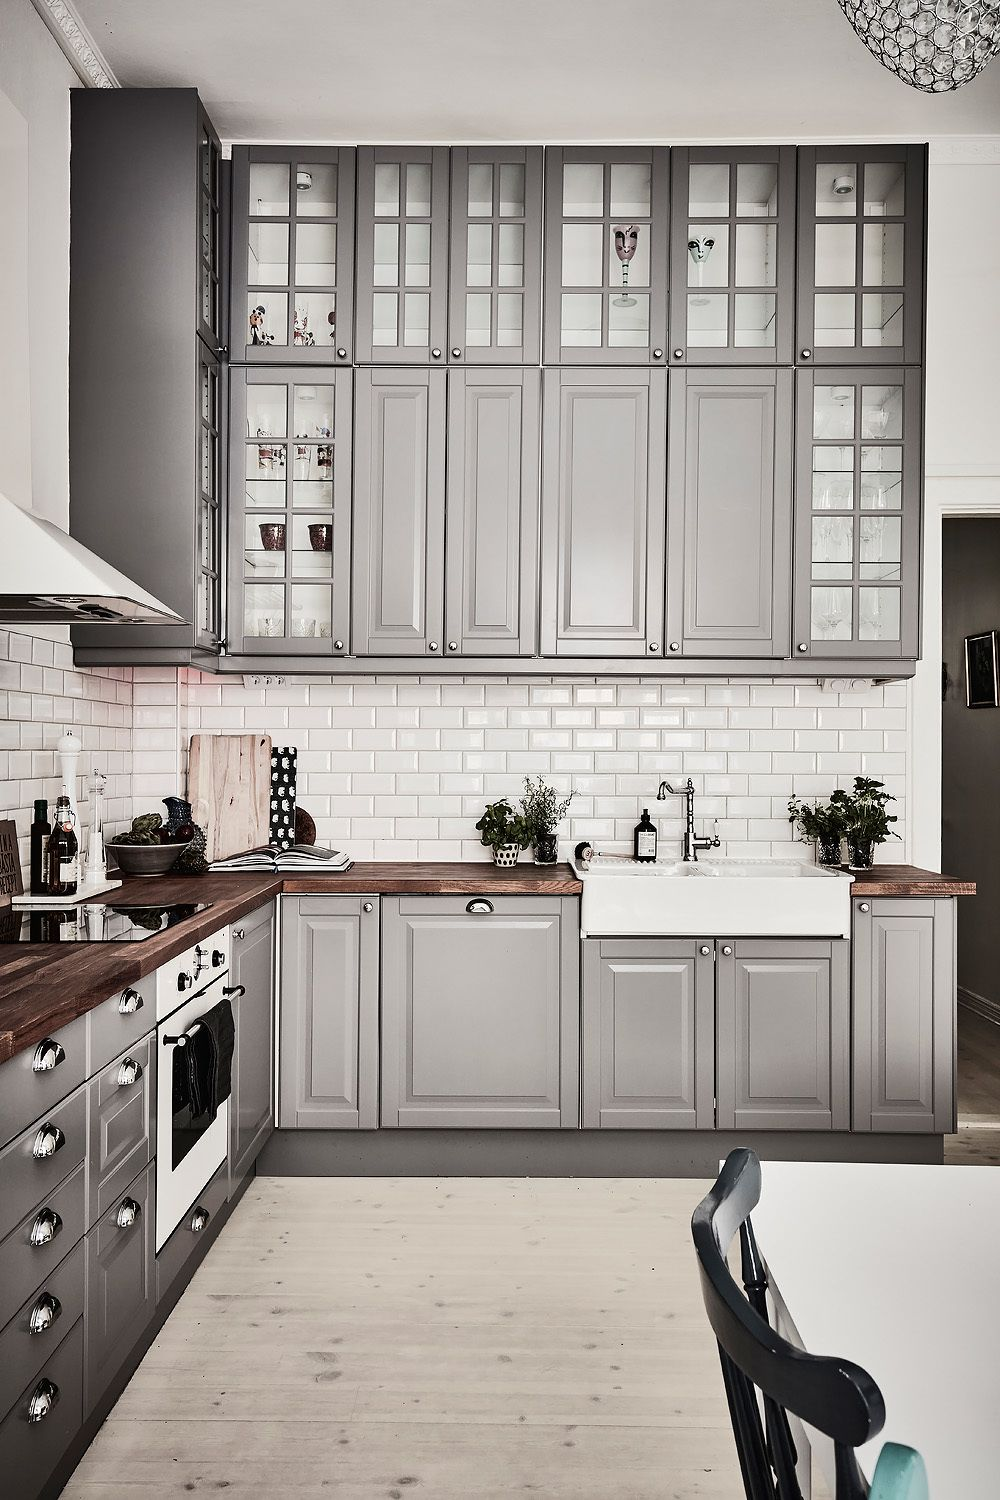 Best Kitchen Gallery: Inspiring Kitchens You Won't Believe Are Ikea Gray Cabi S of Black And Gray Kitchen Cabinets on cal-ite.com